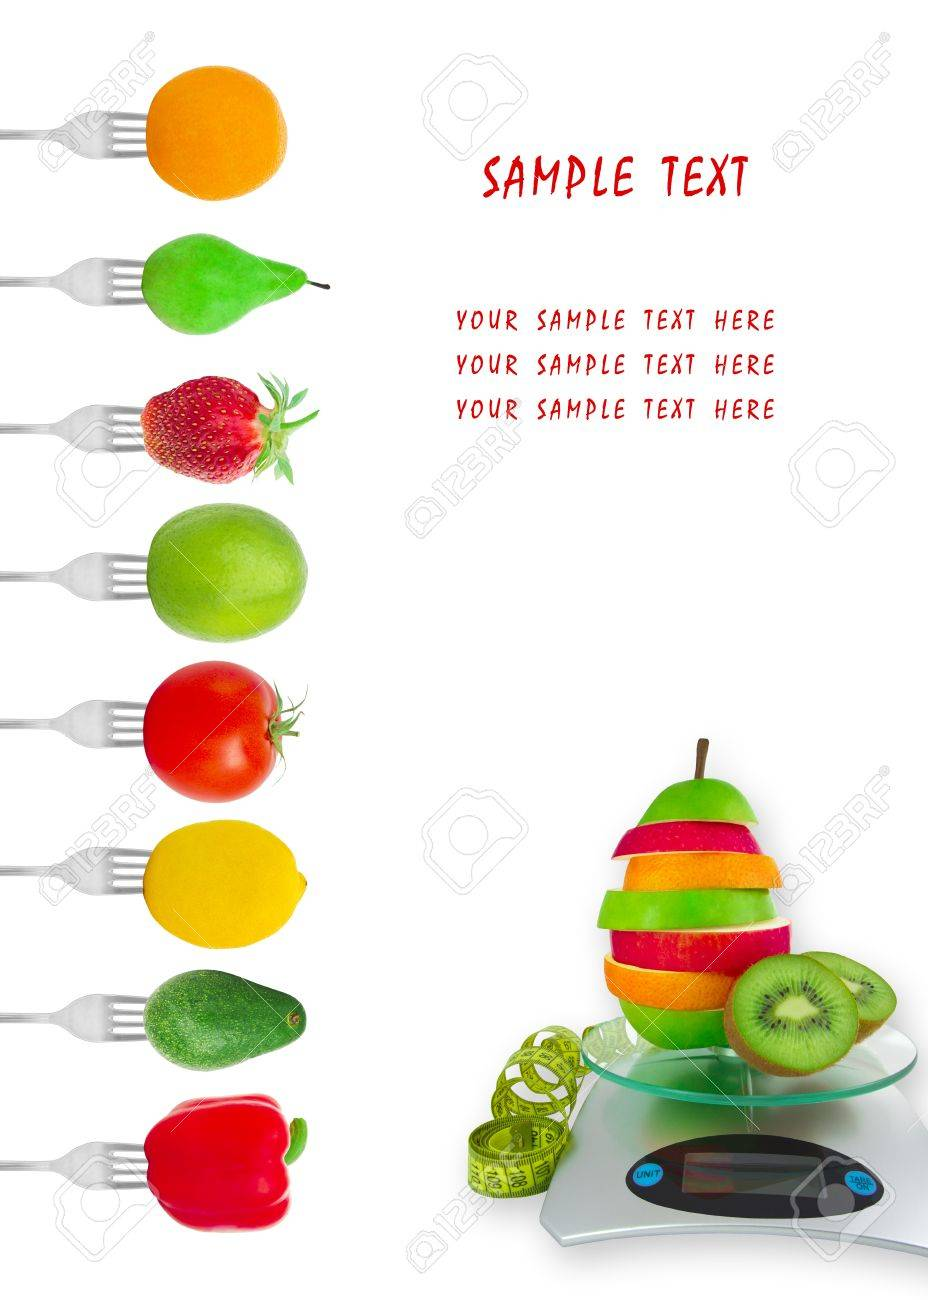 Dietary menu with vegetables and fruit on forks Stock Photo - 14330857